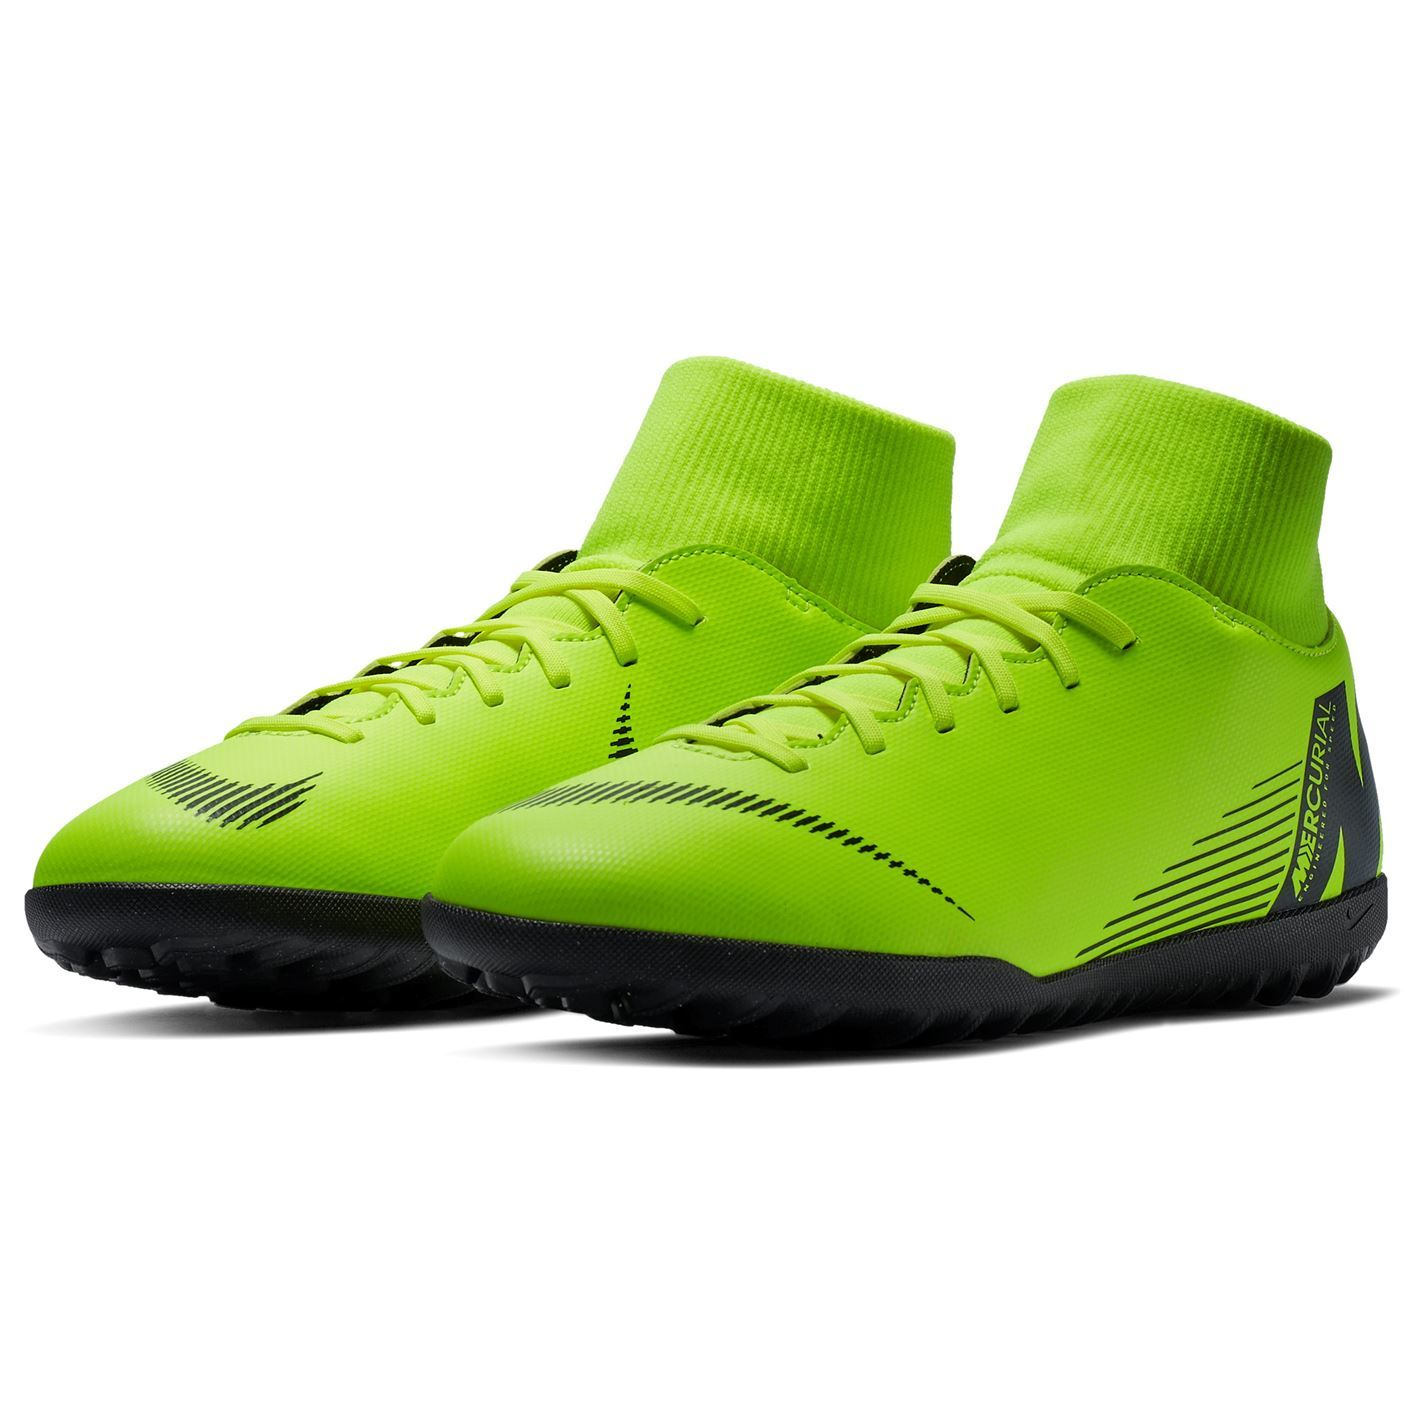 f5de2bd5b66f Nike Mercurial Superfly Club DF Astro Turf Football Trainers Mens ...